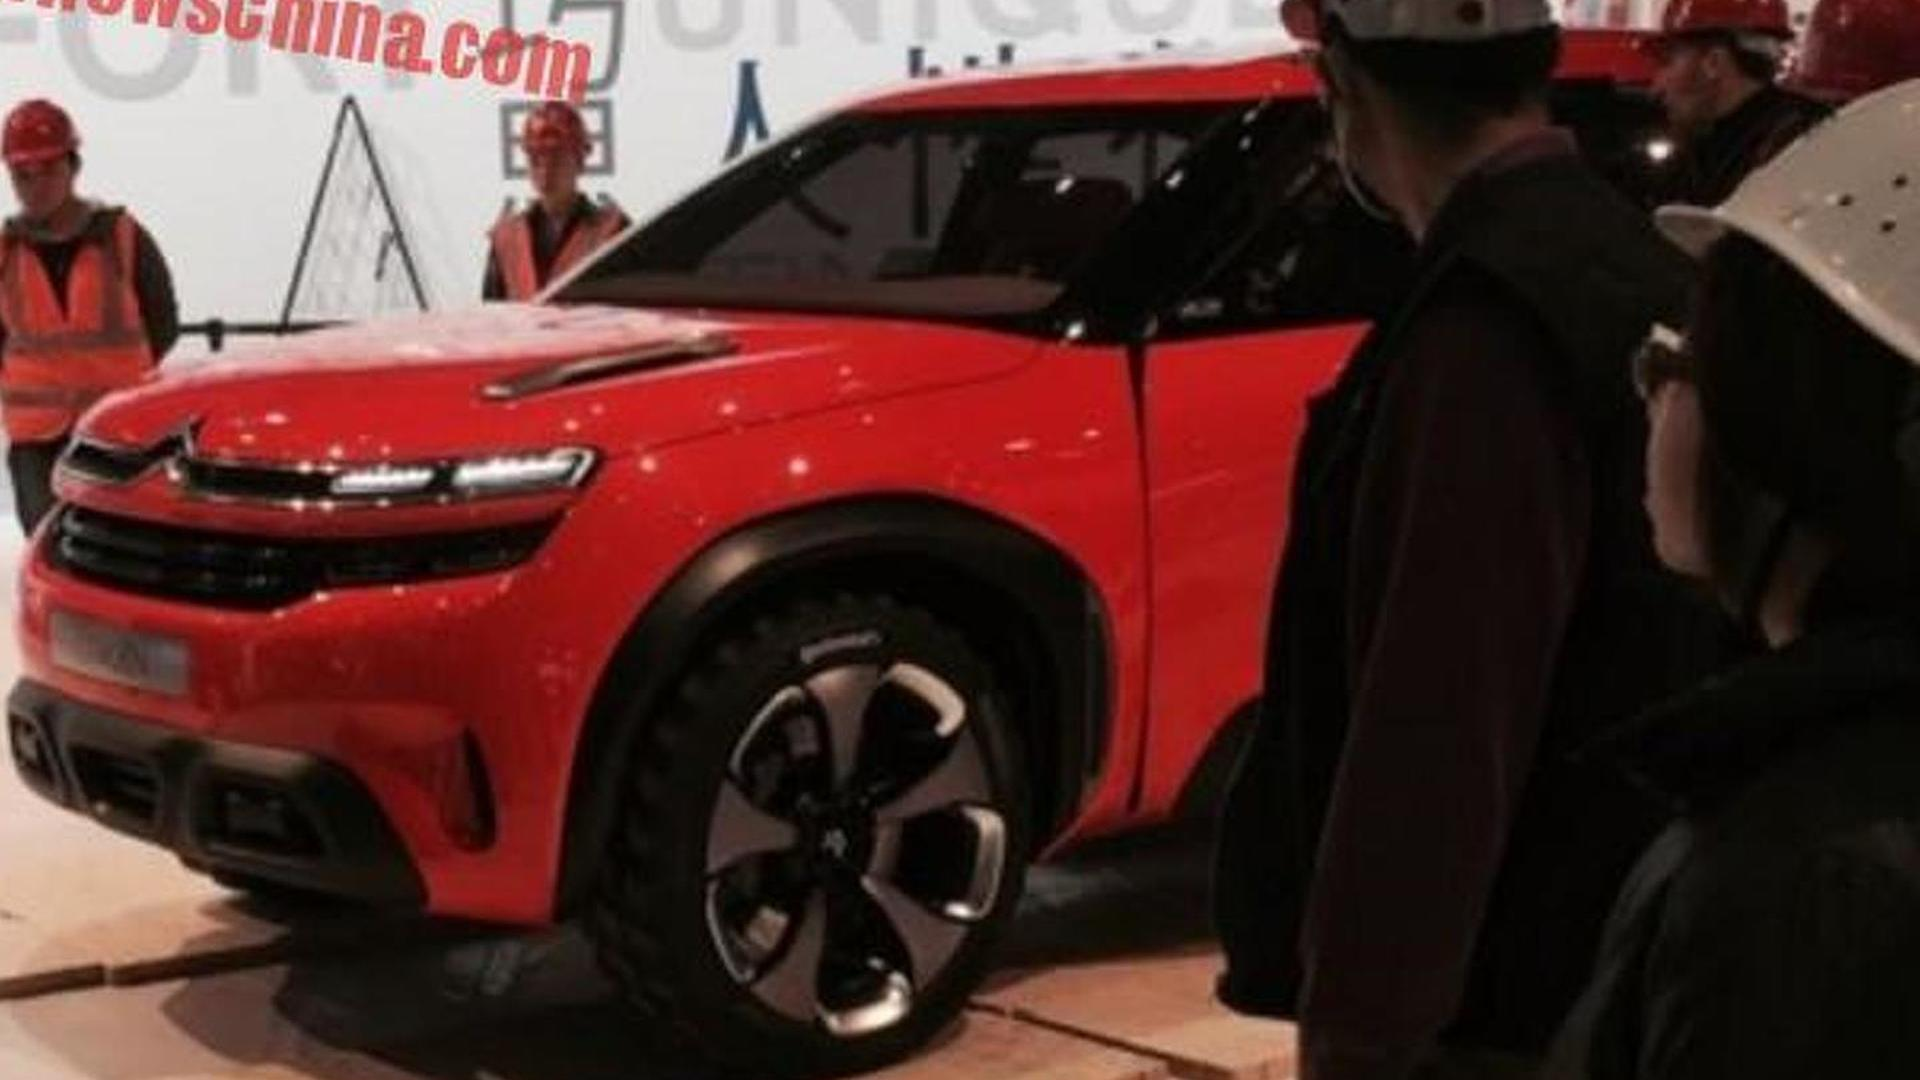 Citroen Aircross concept photographed in the metal